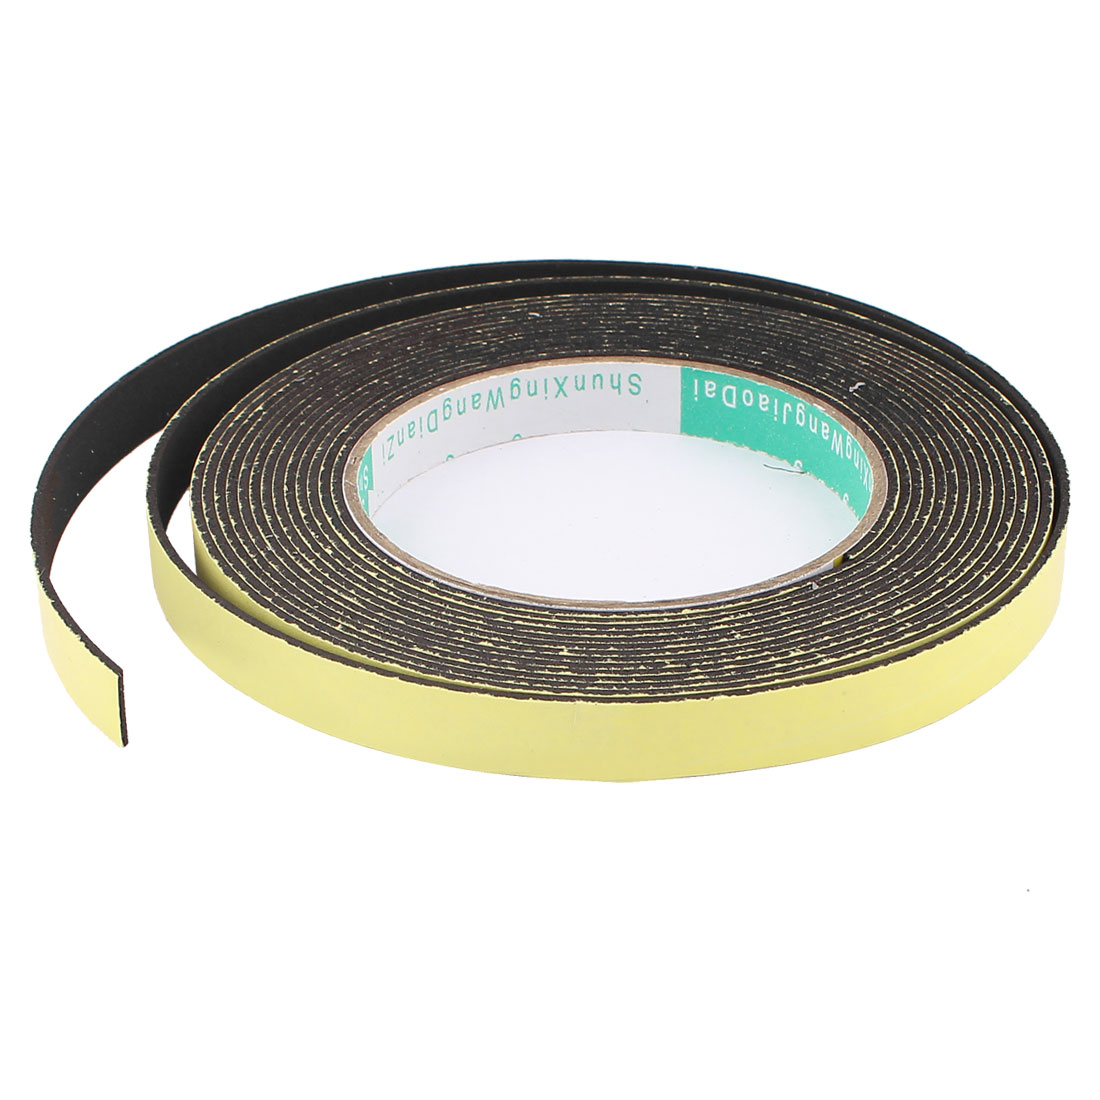 5M 12mm x 1.5mm Single Side Adhesive Foam Sealing Tape for Door Window